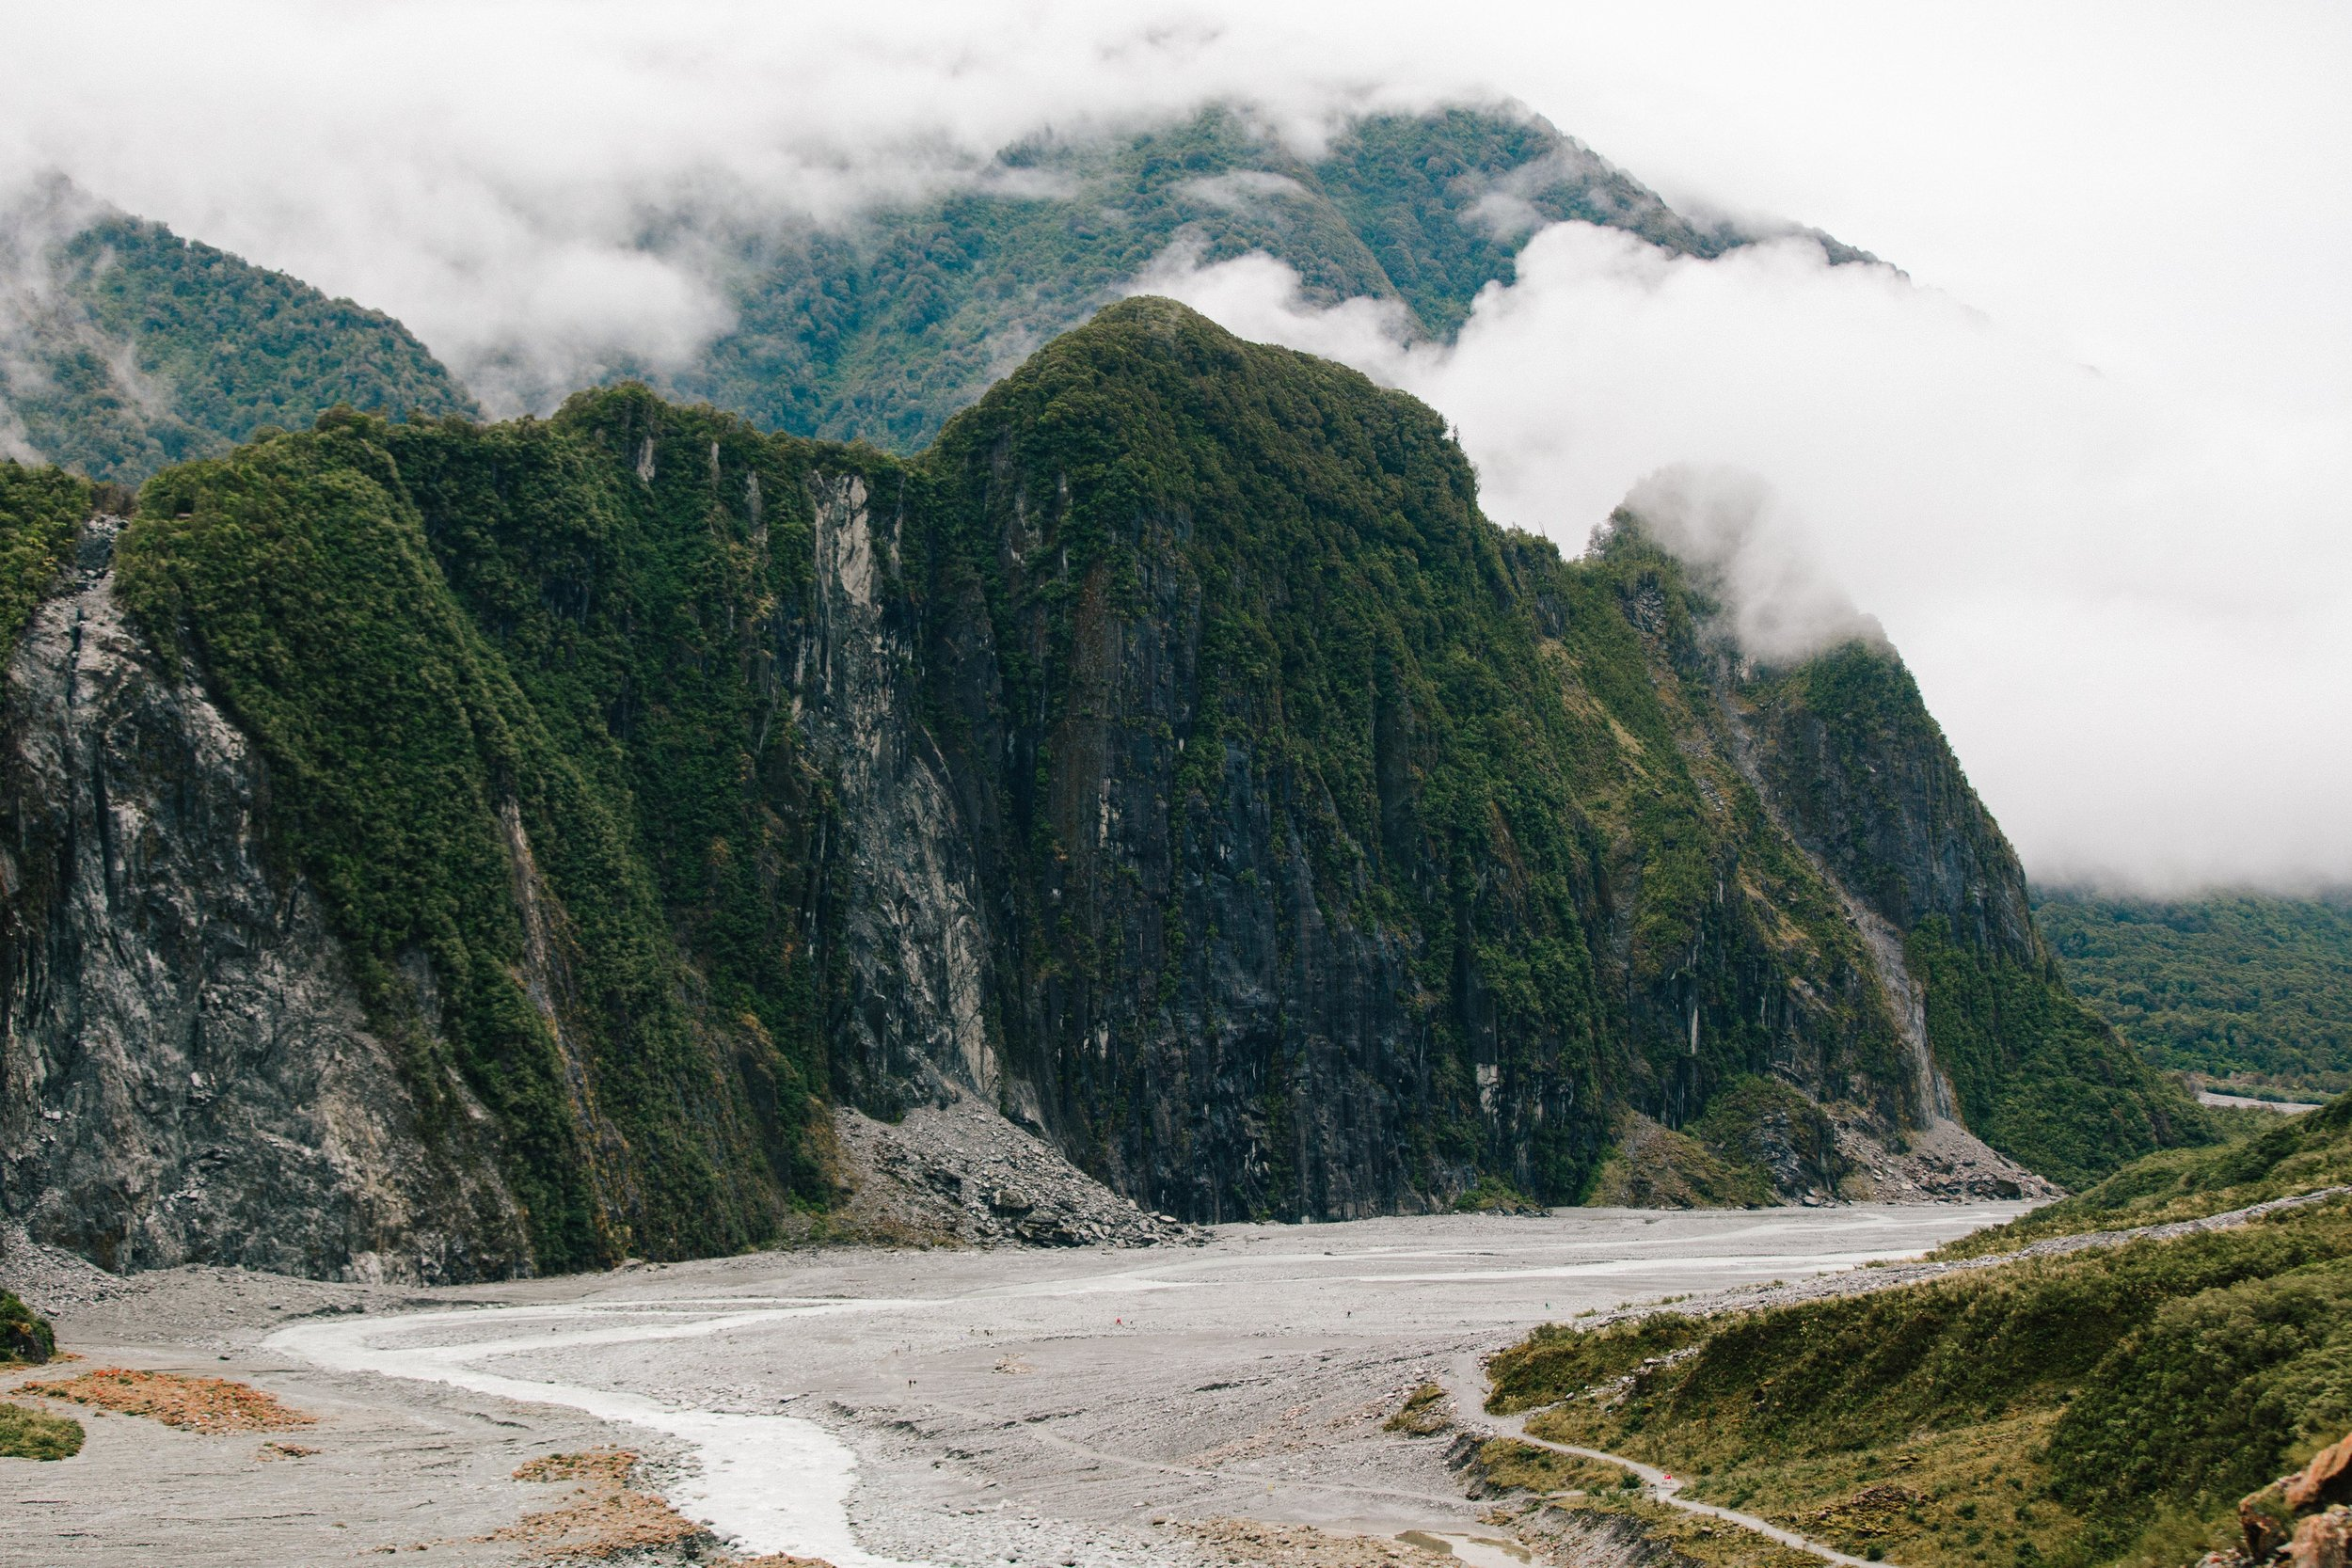 Mountains-Clouds-New Zealand-Landscape.jpg